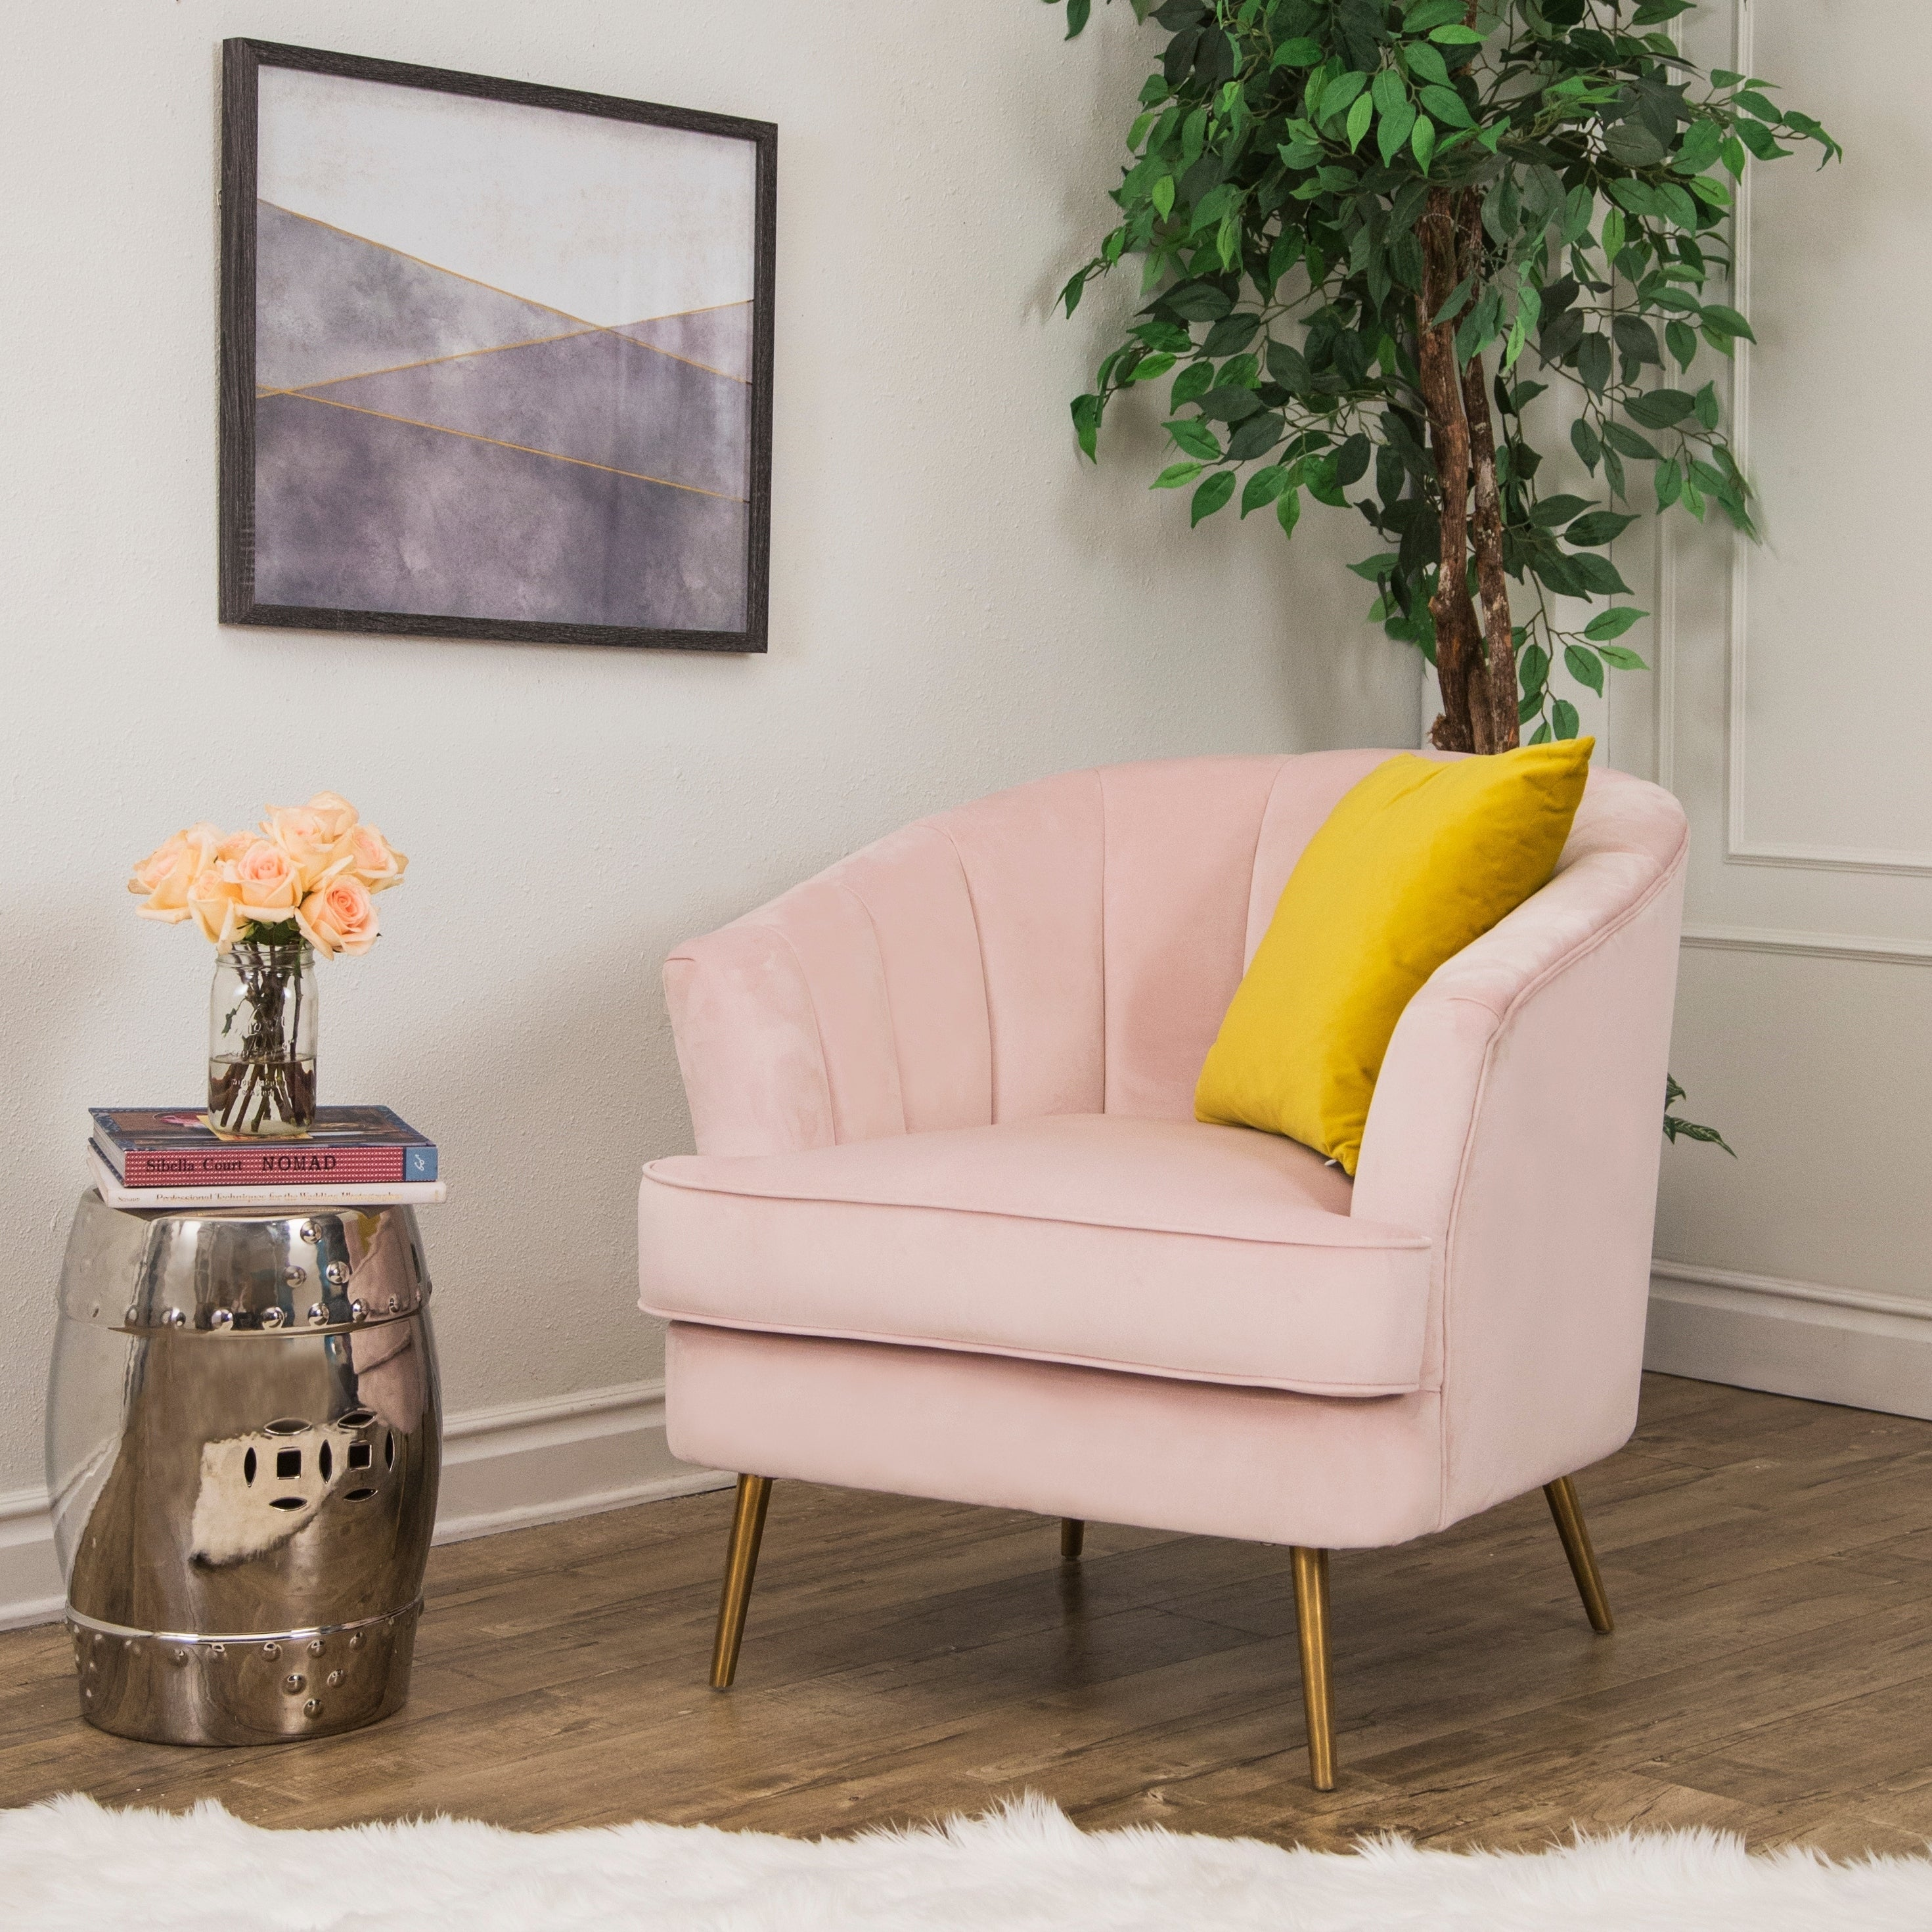 Shop Abbyson Channel Tufted Velvet Accent Chair Blush Pink Overstock 22848843